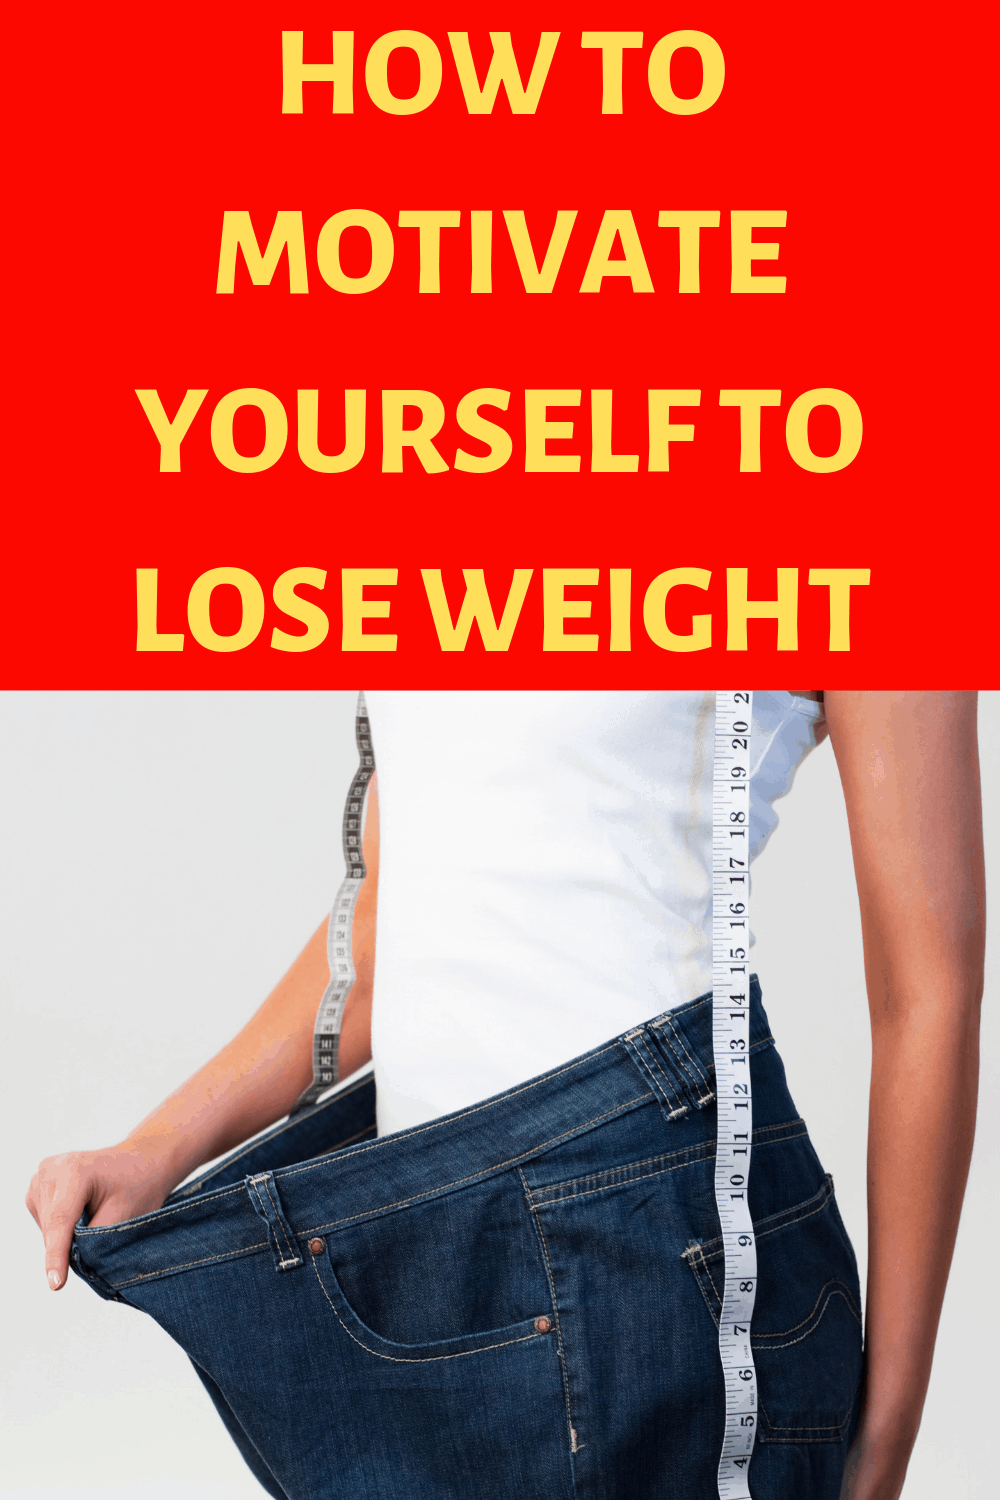 how to lose weight,  weight loss goals,  lose weight with yoga